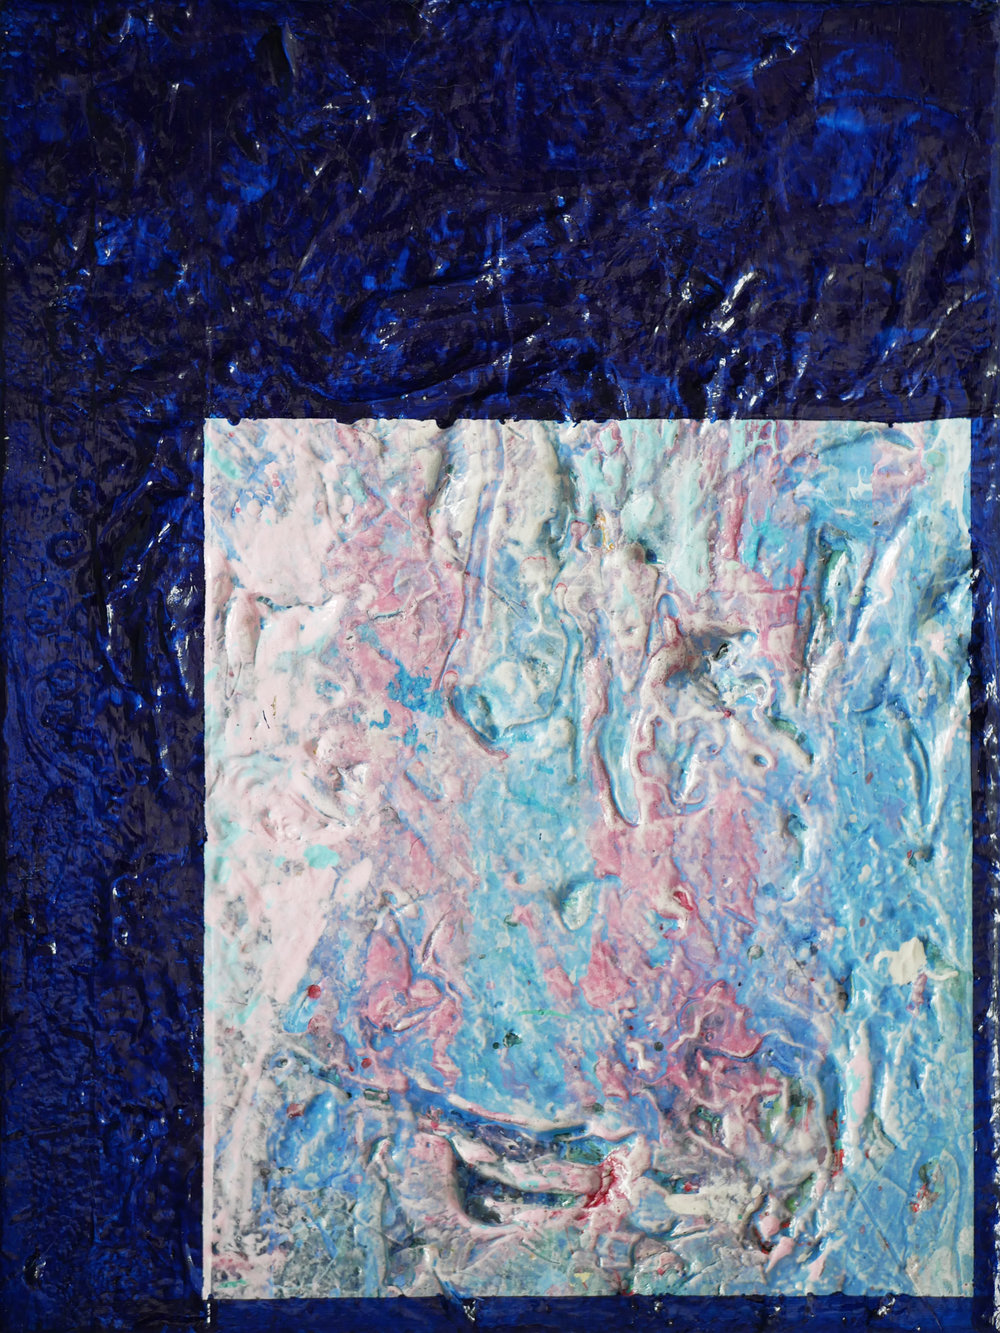 UNTITLED   2013 Acrylic on canvas 12 x 9 in 30.4 x 22.8 cm